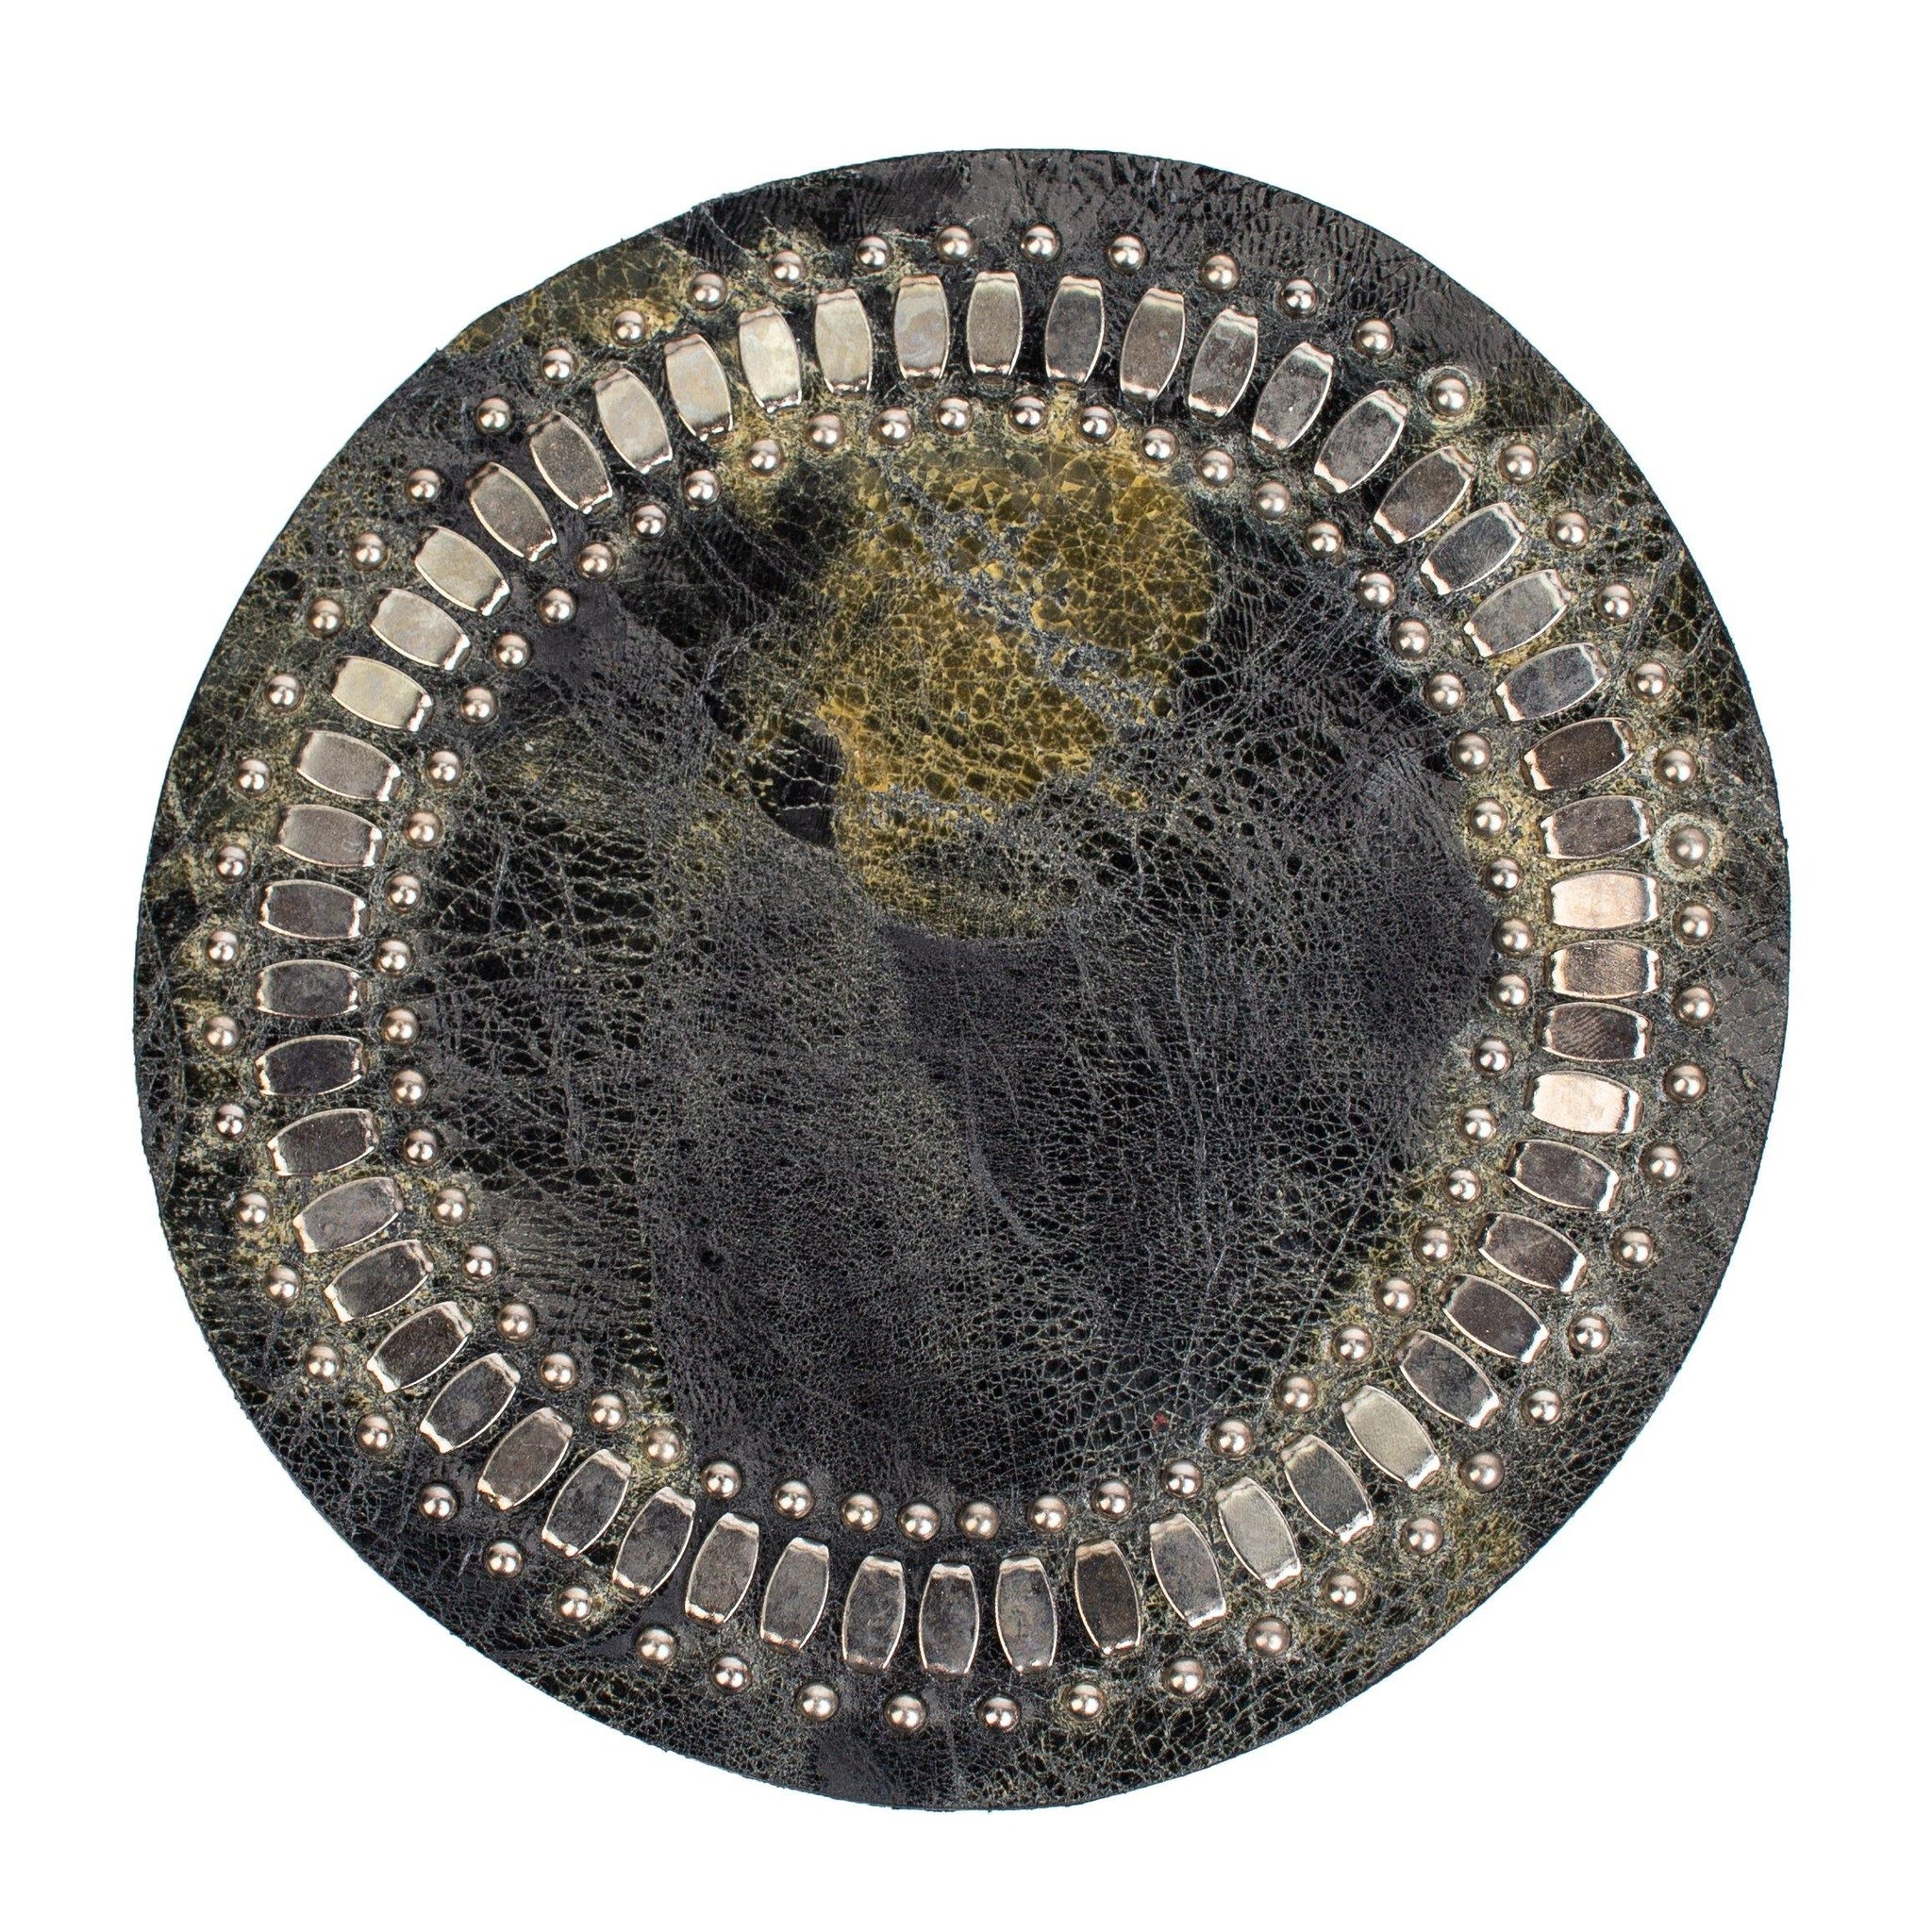 Round Coasters in Black Iguana Leather - Calleen Cordero Designs